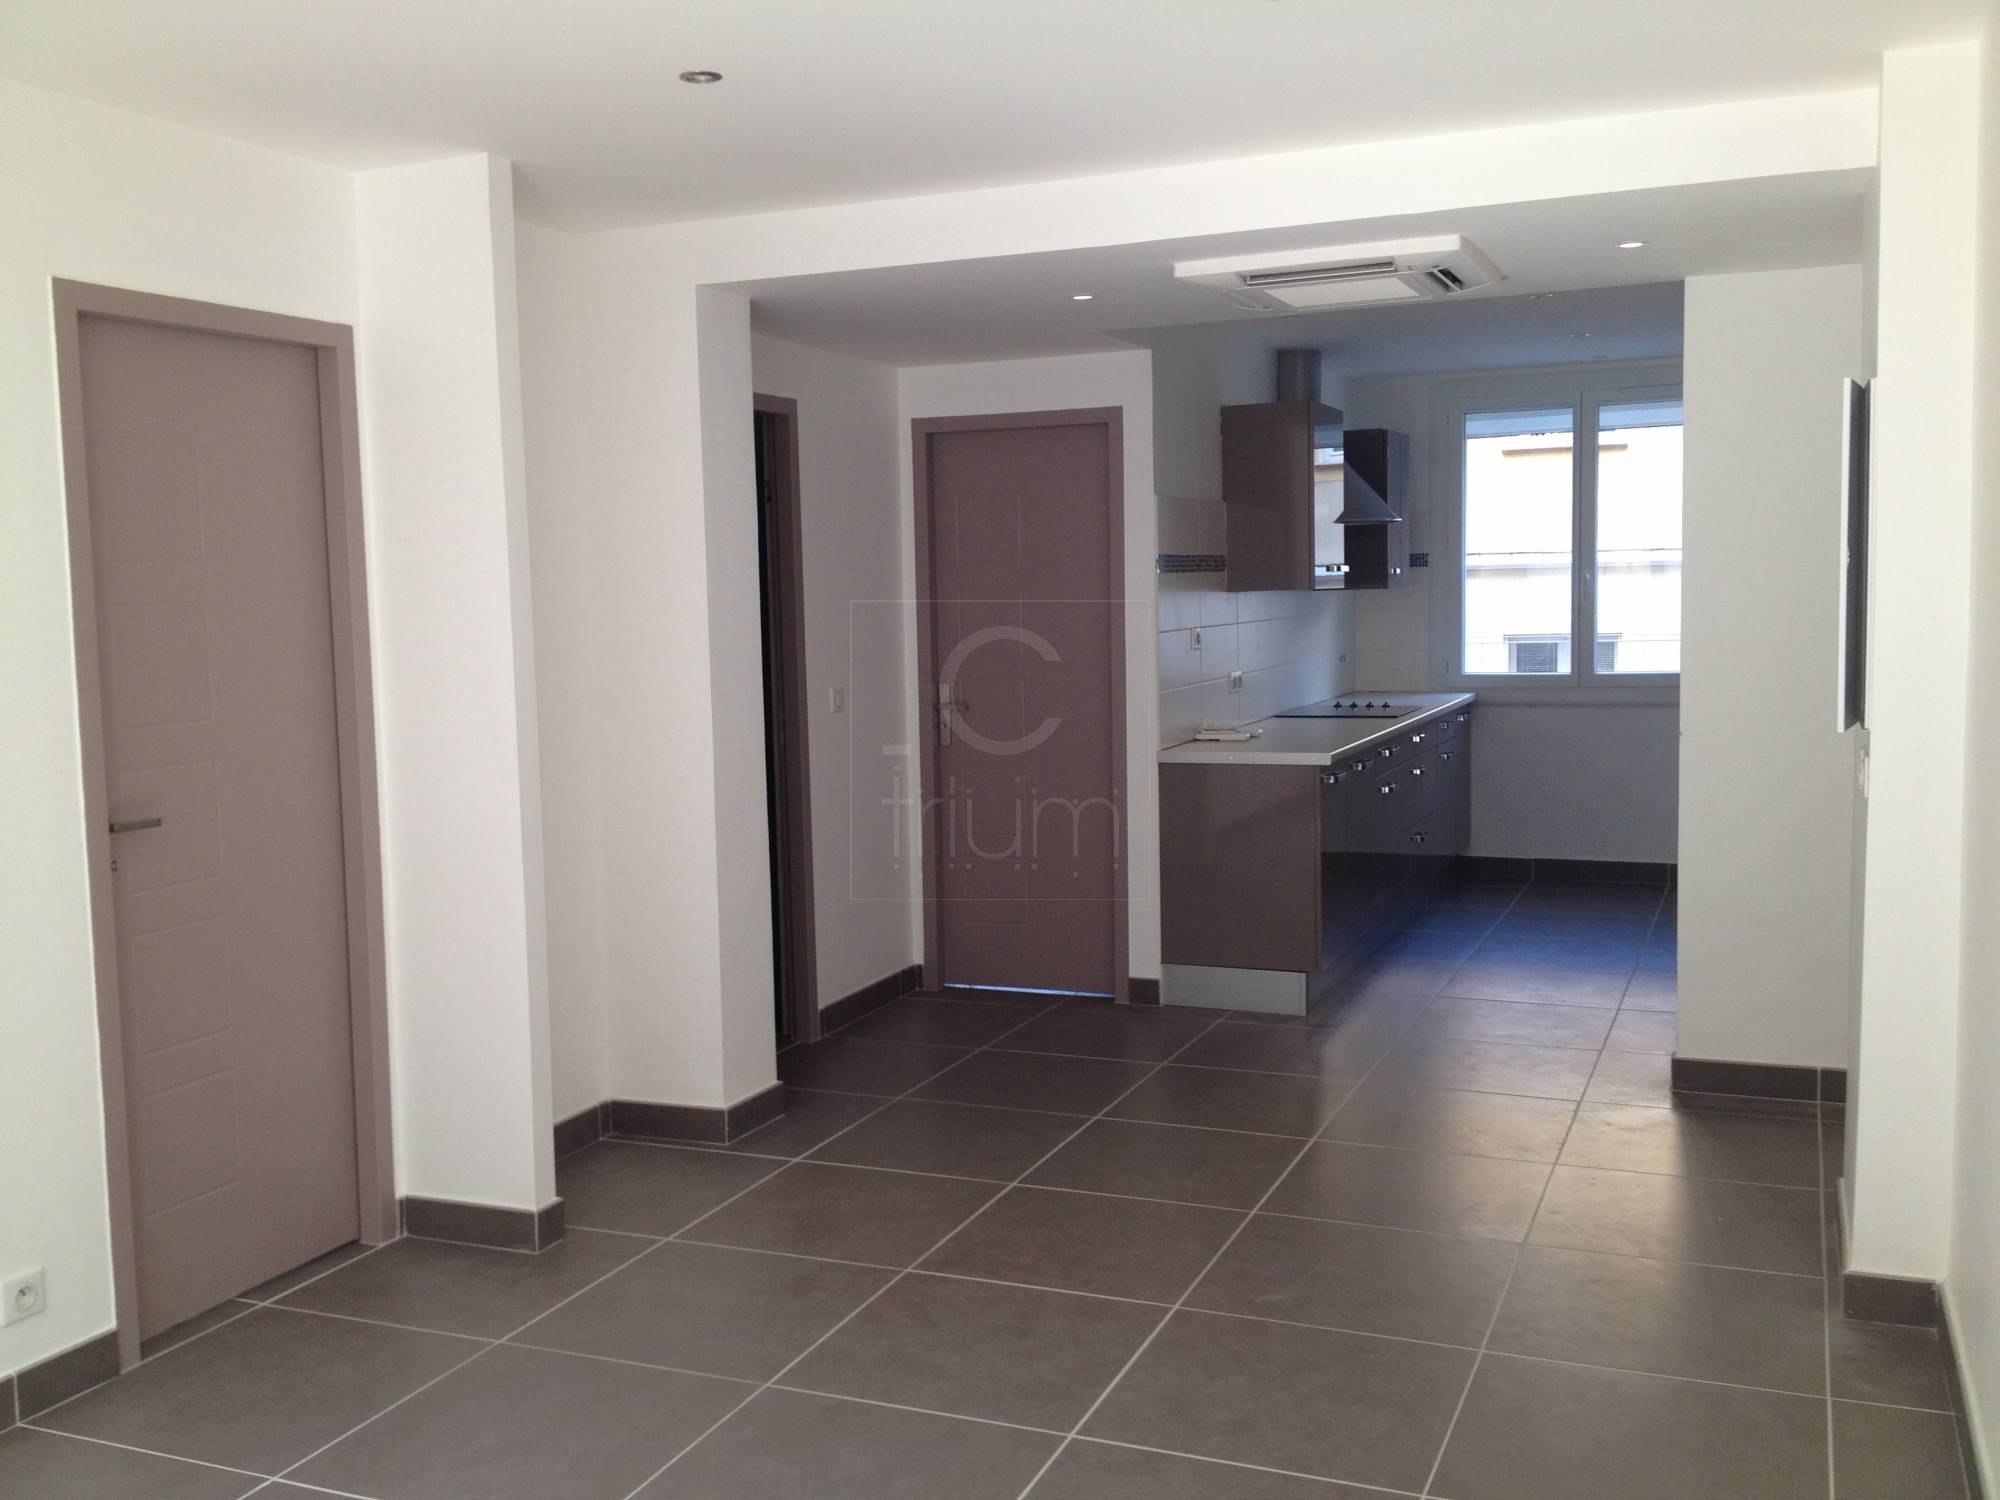 Location Appartement T3 F3 Marseille 7eme Endoume Refait